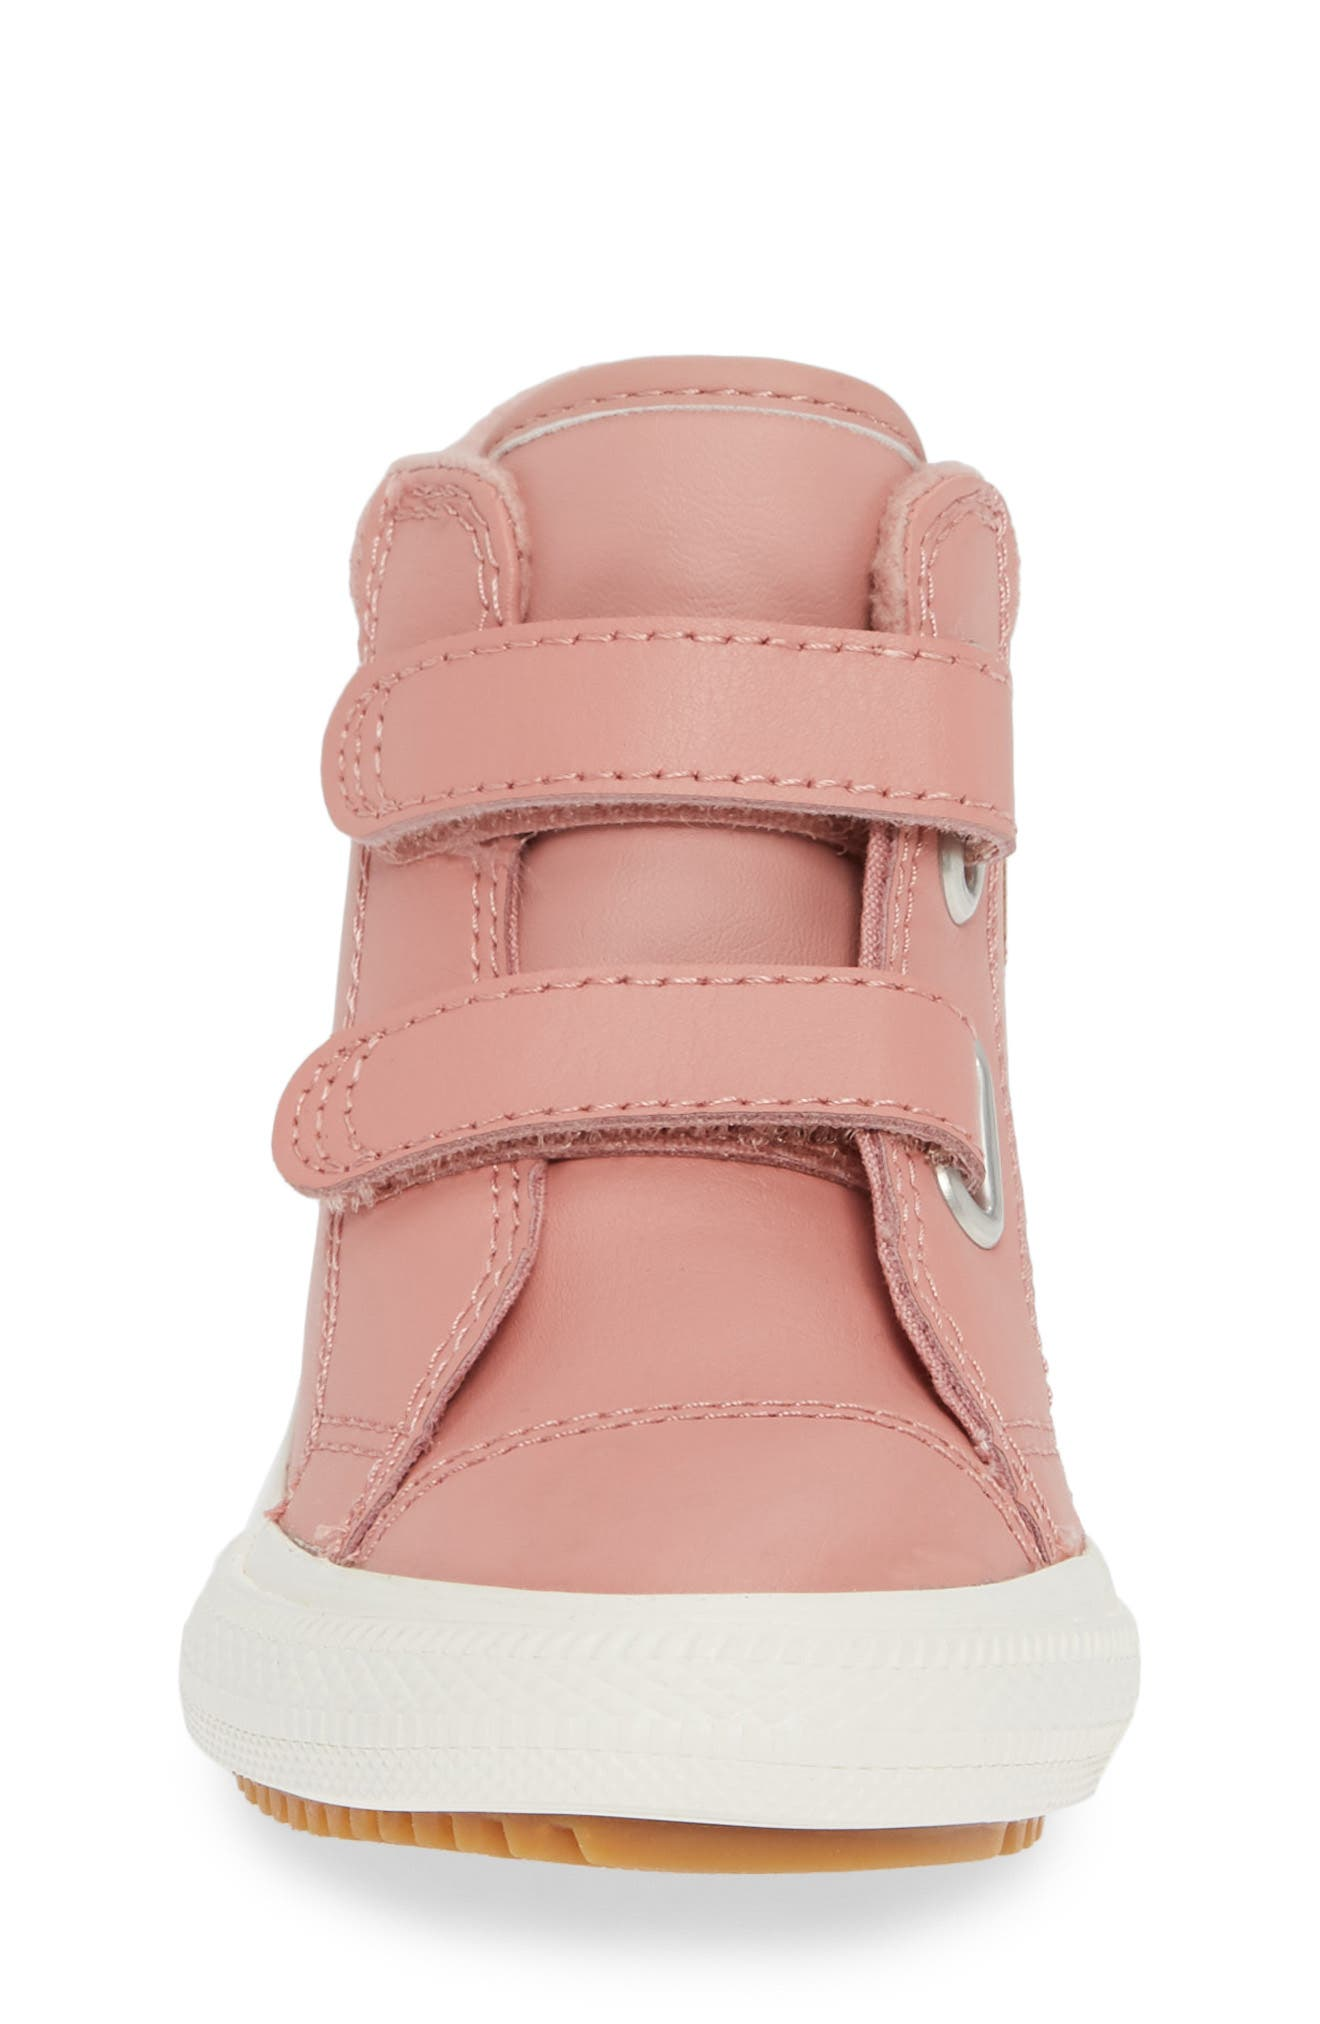 Chuck Taylor<sup>®</sup> All Star<sup>®</sup> 2V Leather High Top Sneaker,                             Alternate thumbnail 4, color,                             RUST PINK